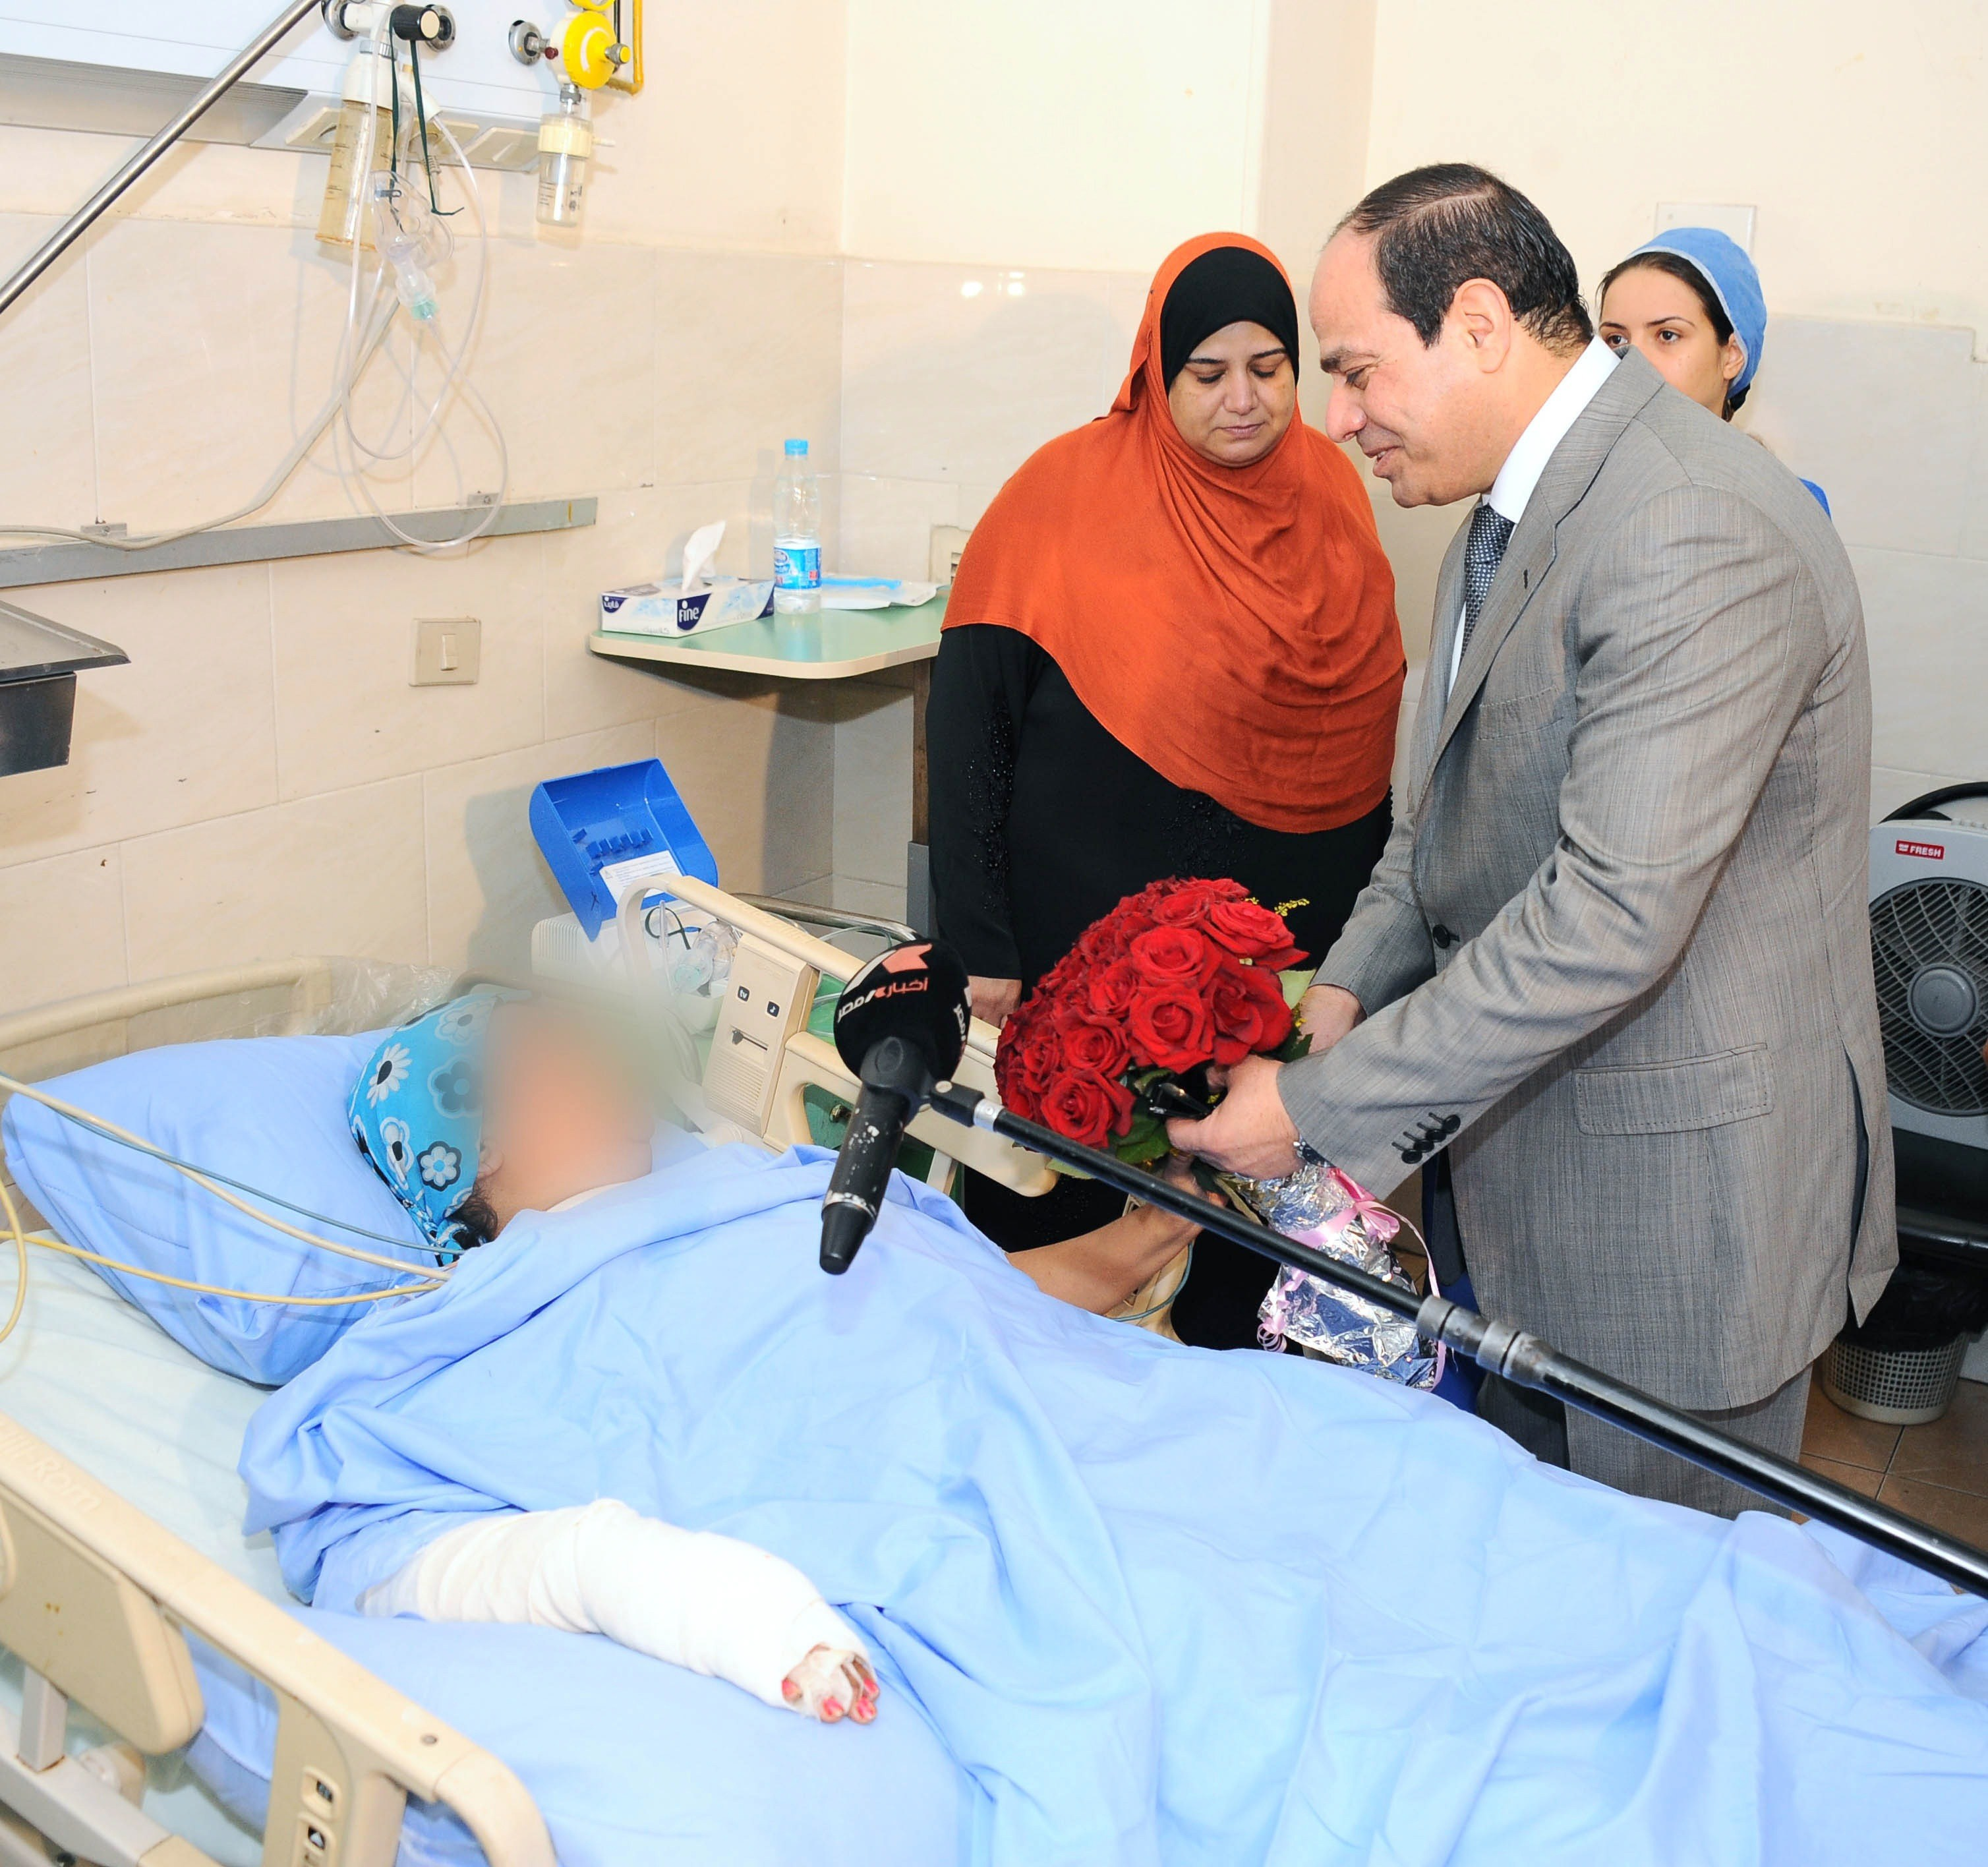 "A handout picture released  by the Egyptian presidency on June 11, 2014, shows newly elected president Abdel Fattah al-Sisi visiting a hospital where the victim of a sexual assault is receiving treatment. Egypt, which until this month had no specific law on sexual harassment, last week approved penalties for such offences to include jail terms, fines or both. Sisi has instructed the interior minister Mohamed Ibrahim to ""implement the law firmly"" to prevent sexual harassment. (AFP PHOTO / HO / EGYPTIAN PRESIDENCY)"